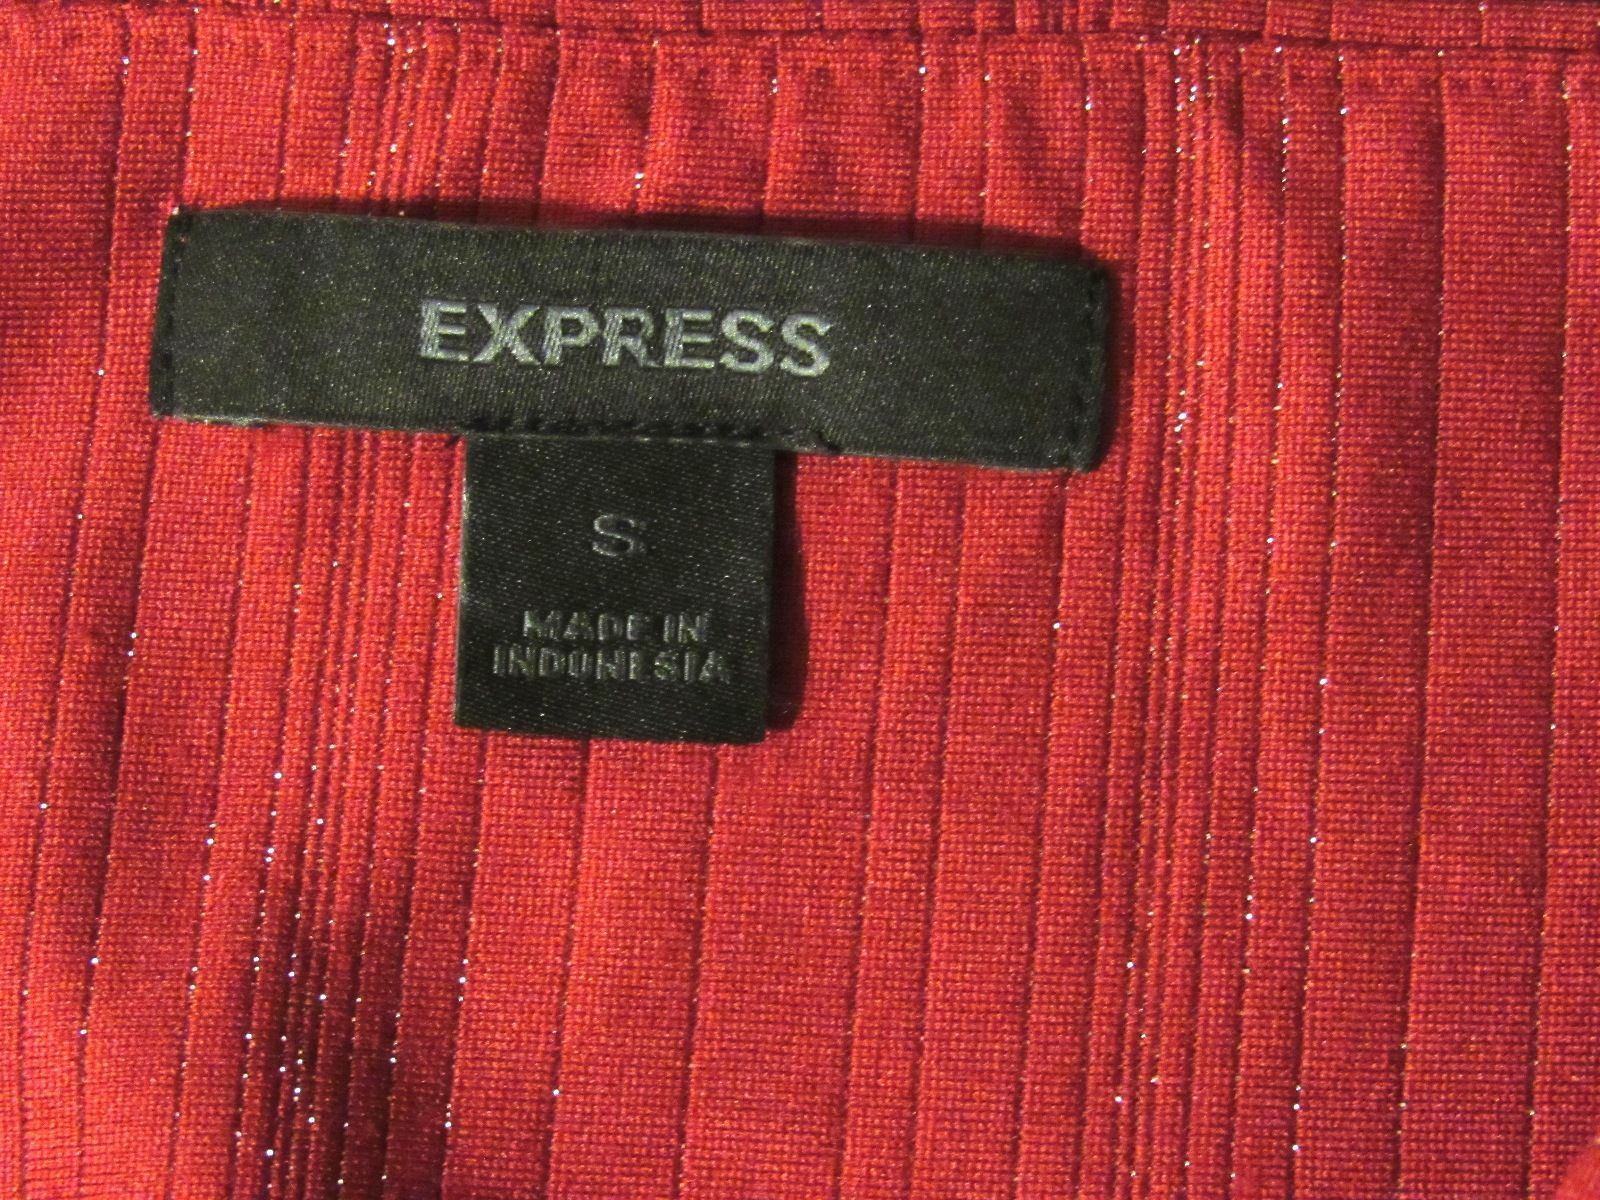 Express Red Tube Top With Small Silver Glittery Stripes -1230